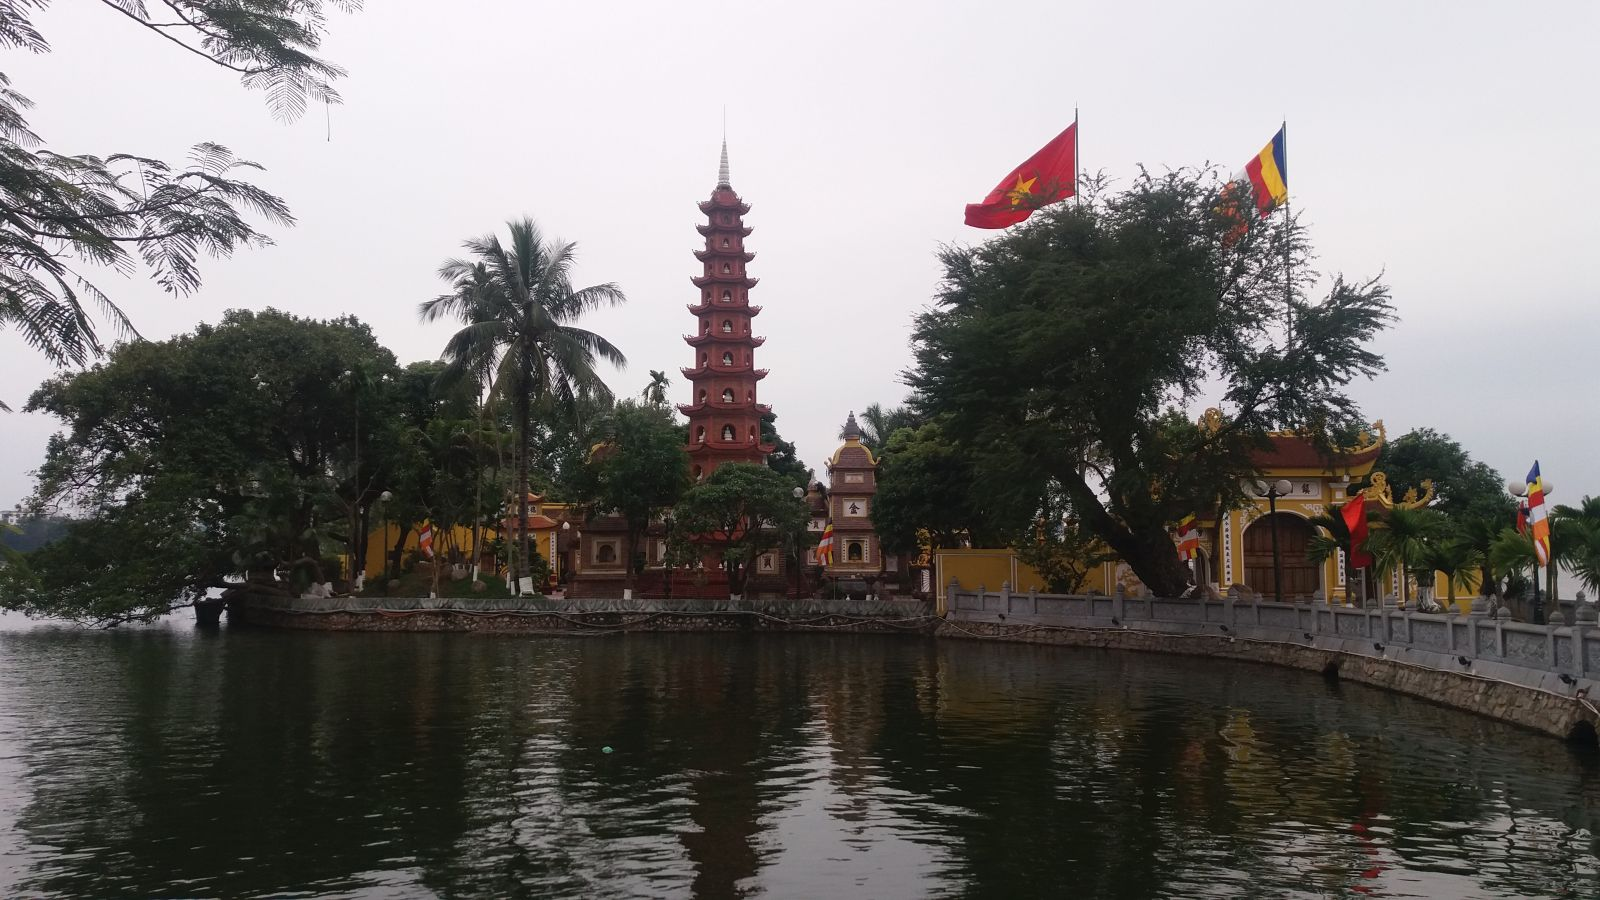 Top attractions & things to do in Hanoi12